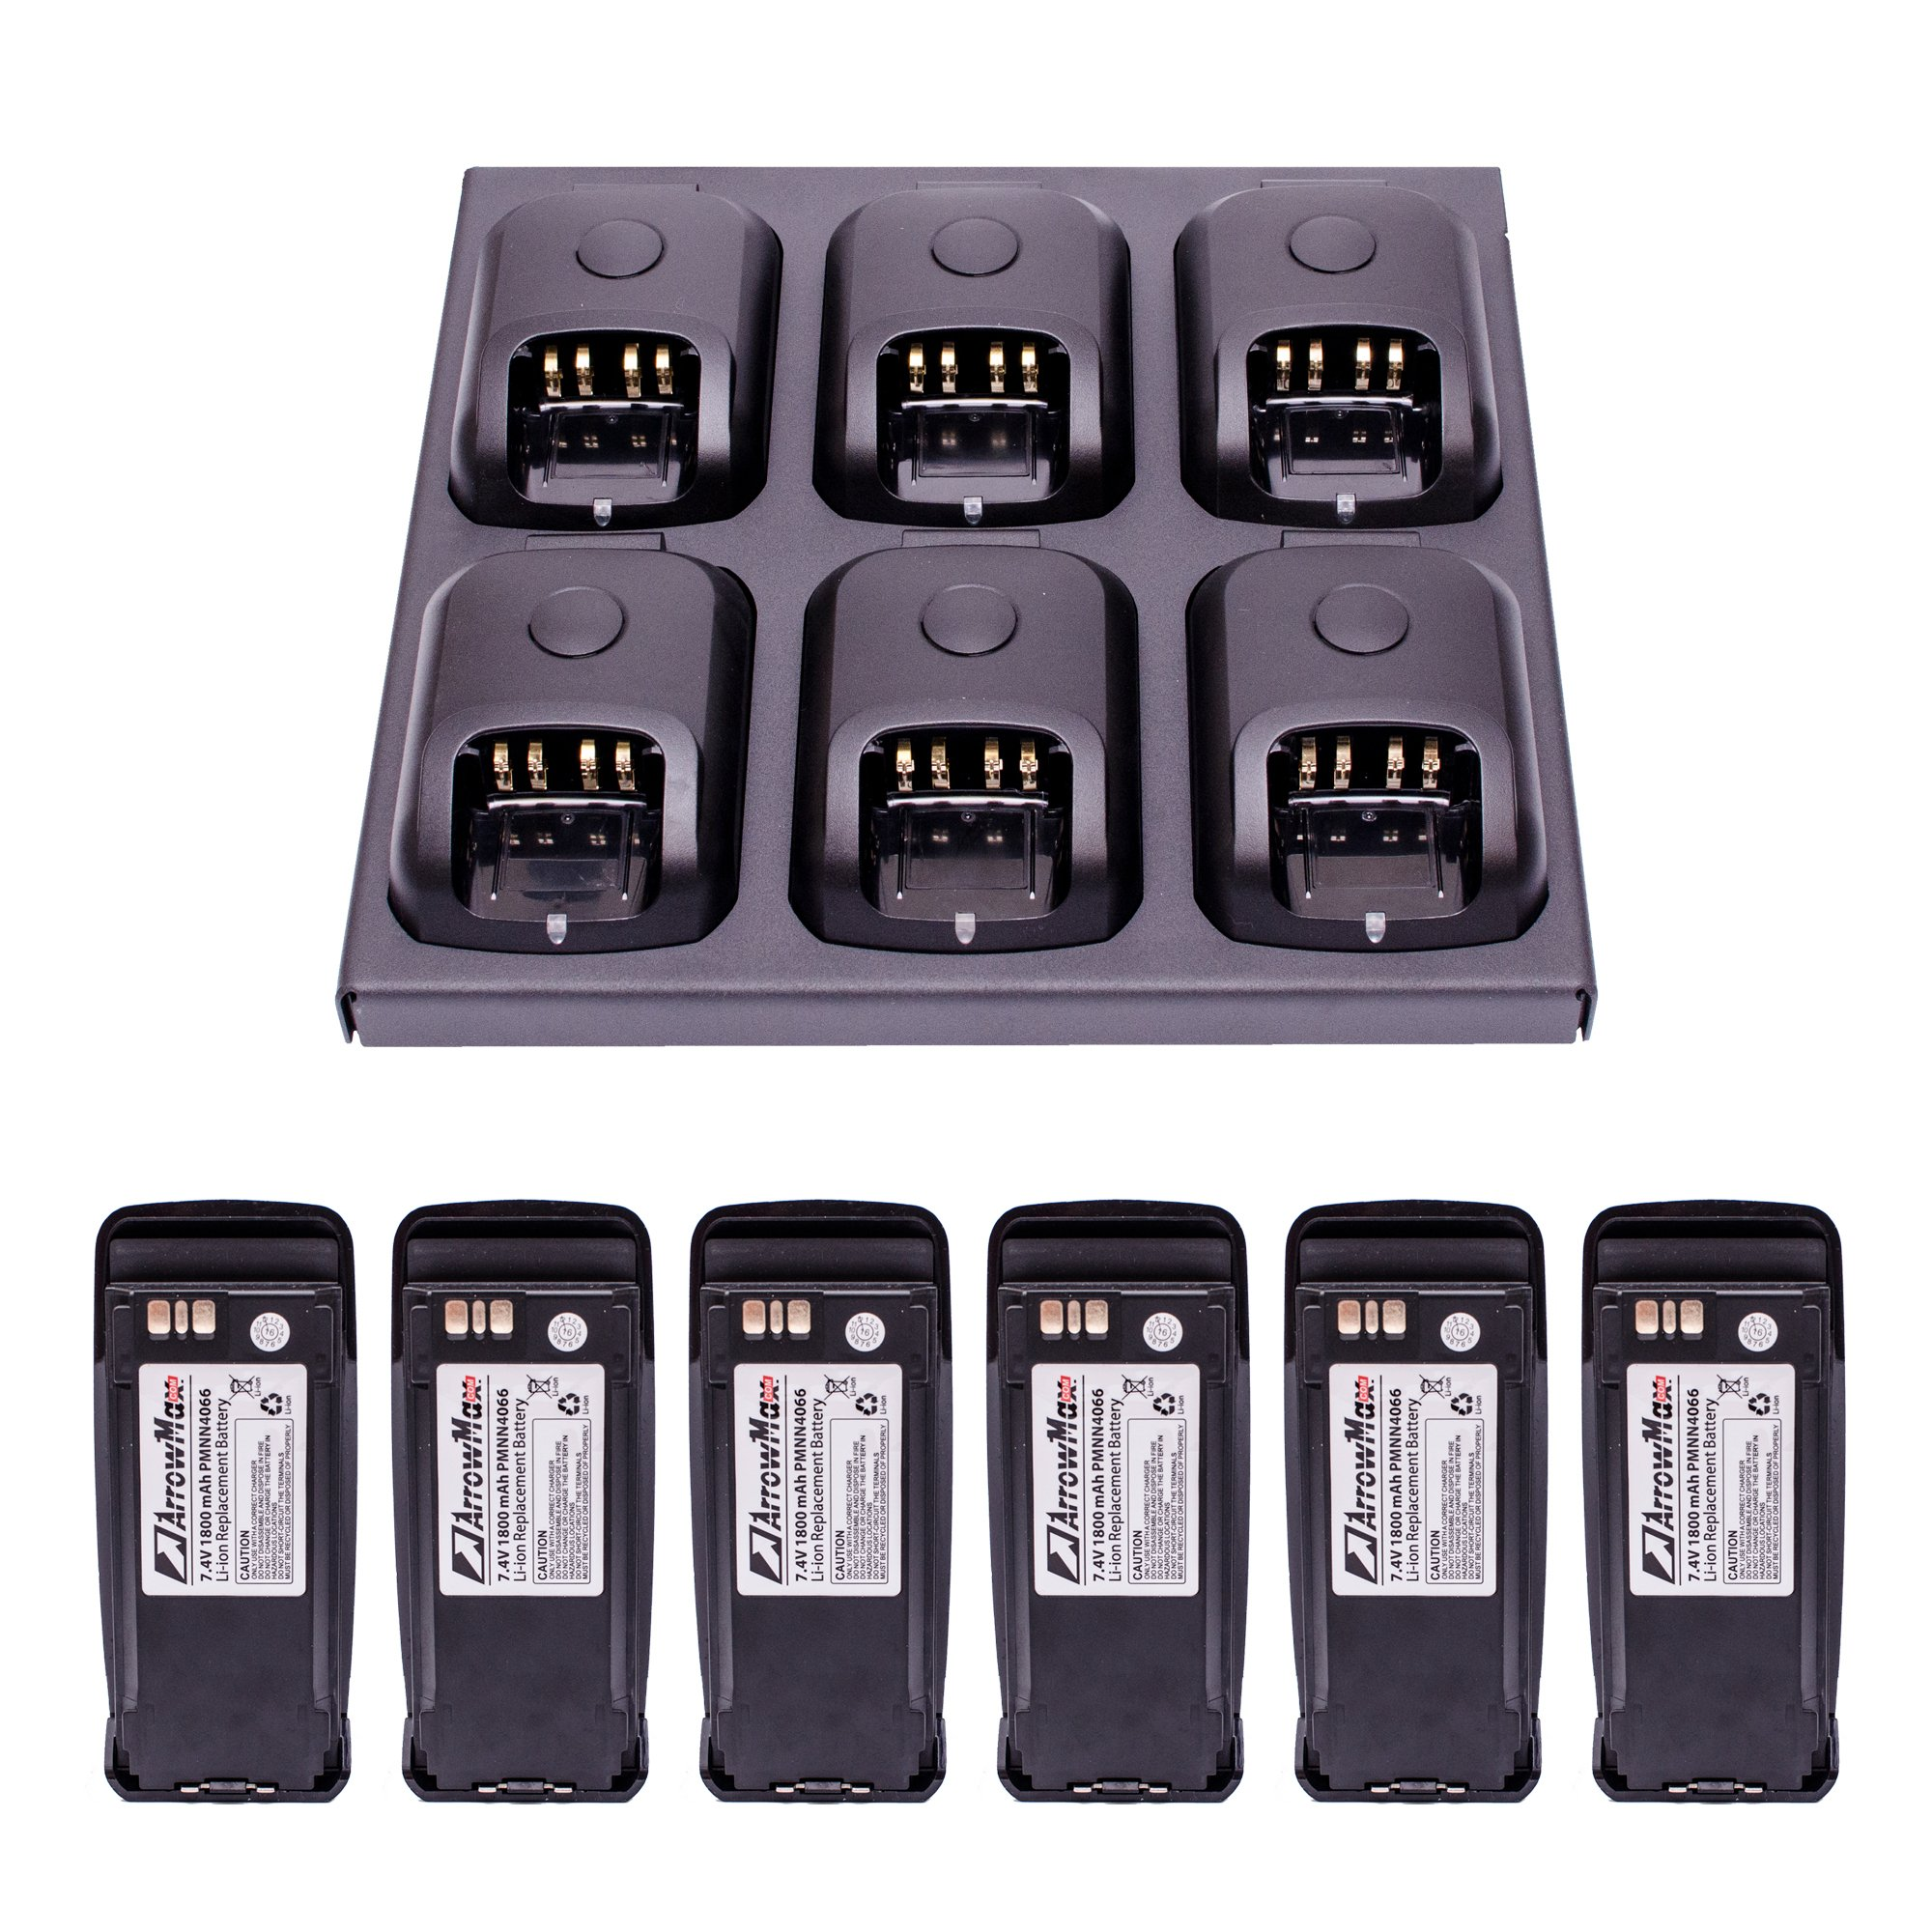 Maxtop C6B6C0011 Battery Charger Bundle Package with 6 PCS 1800mAh PMNN4065 PMNN4066 Replacement Battery for Motorola by MAXTOP (Image #1)